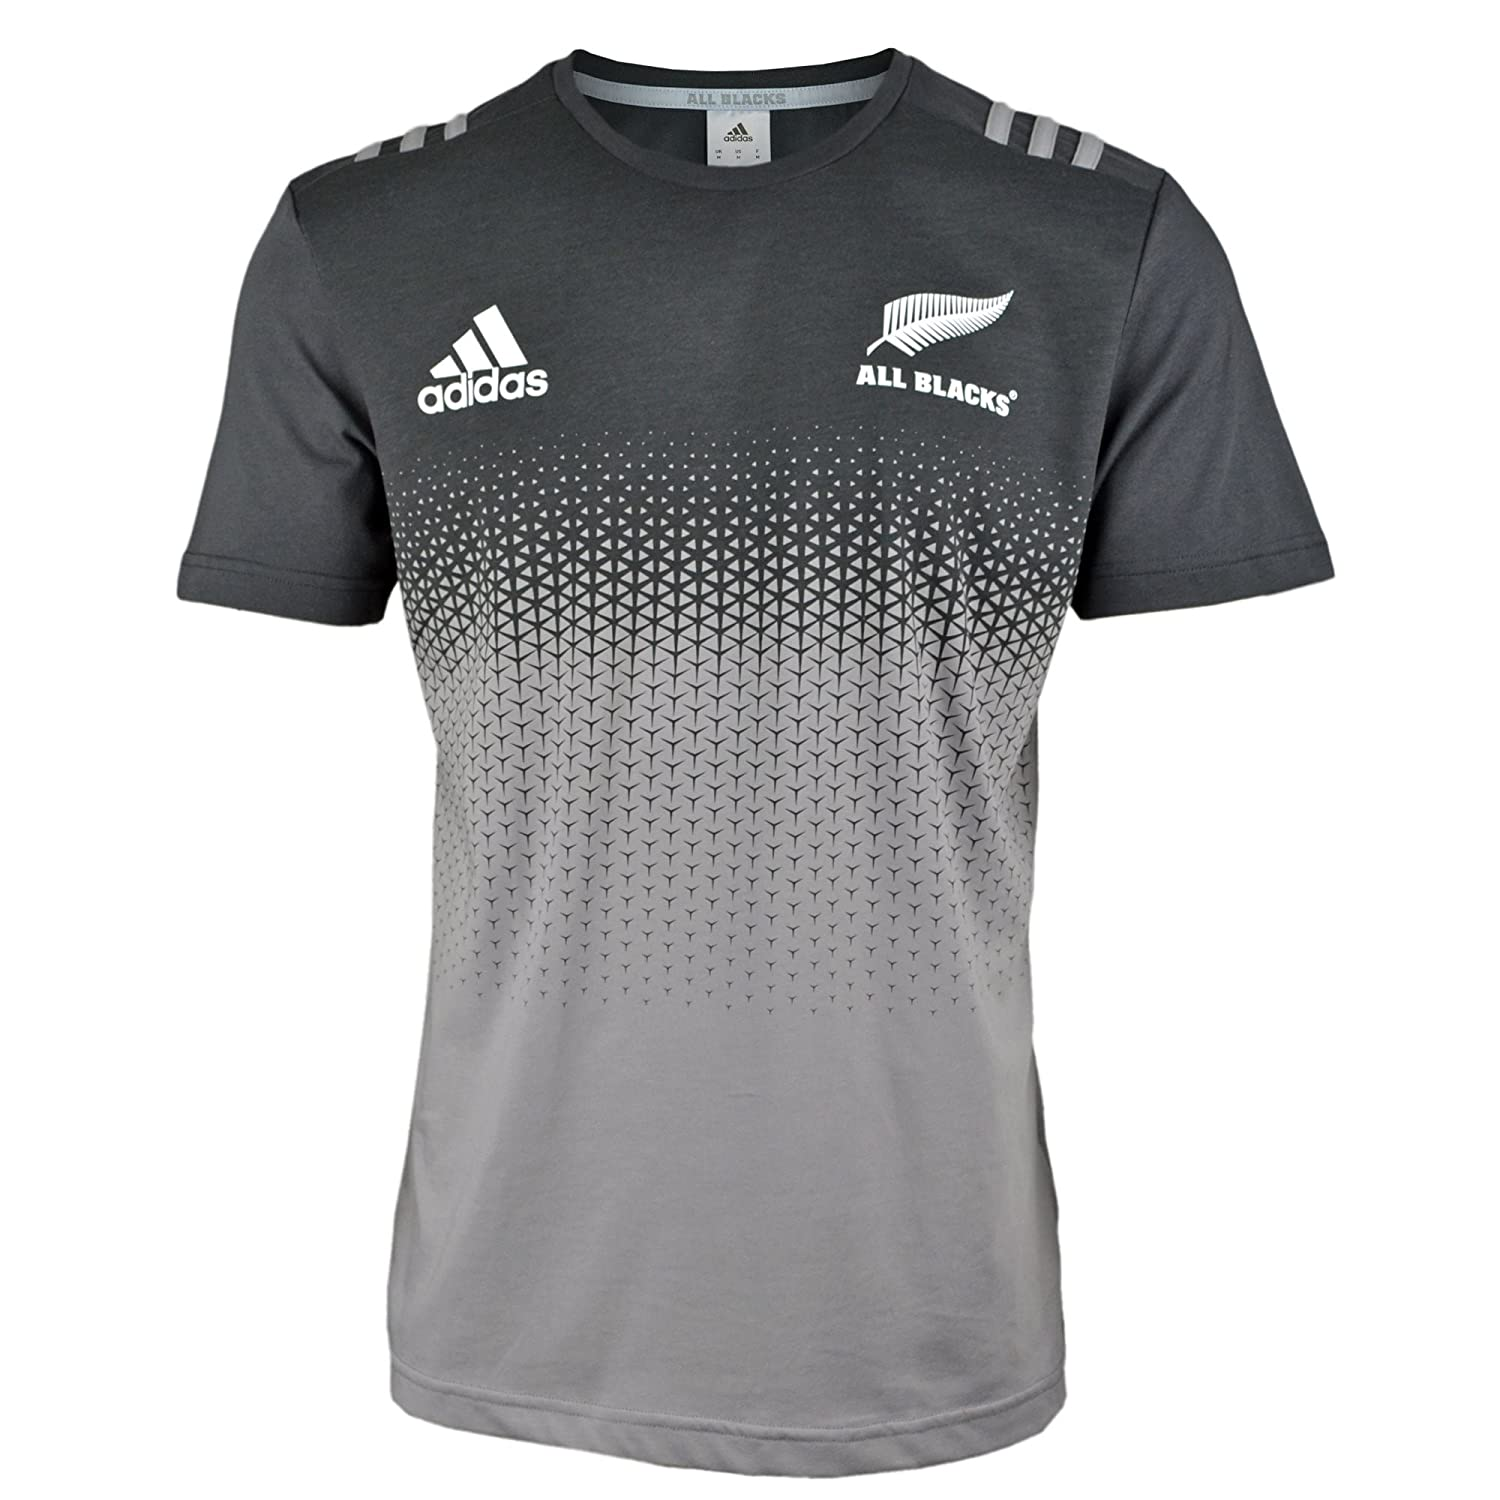 All black t shirt new zealand - New Zealand All Blacks 2017 18 Players Cotton Rugby T Shirt Solid Grey